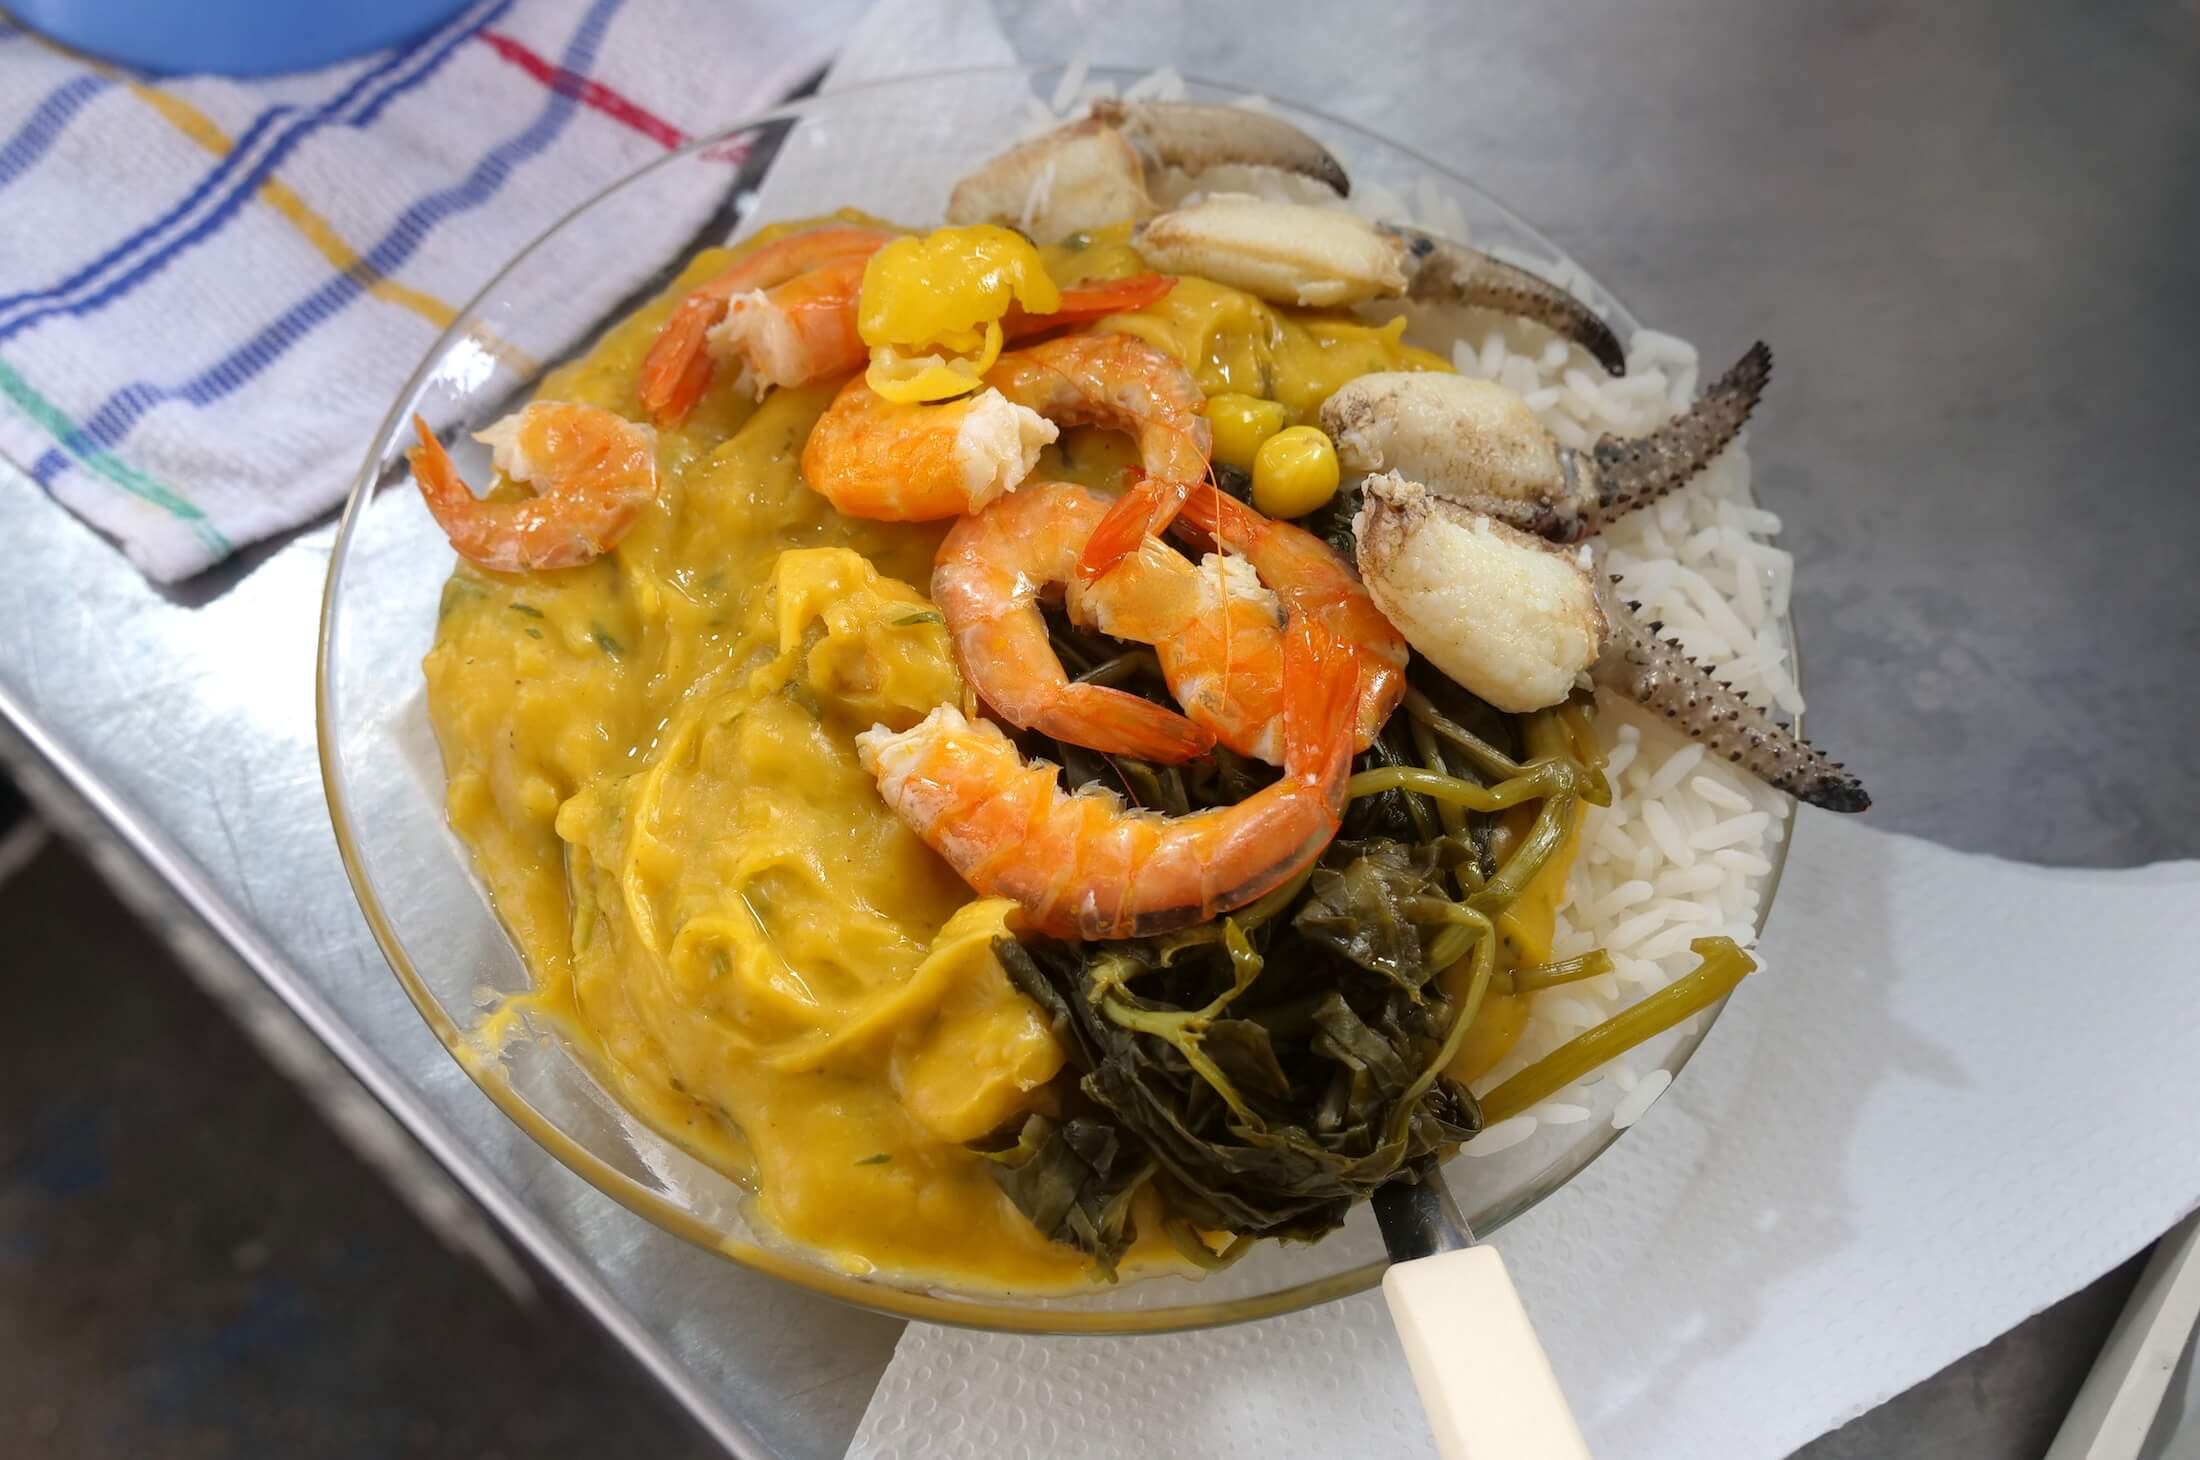 More than just Tacacá, this restaurant also serves Manicoba and an amazing version of Vatapá, complete with crab lollipop claws